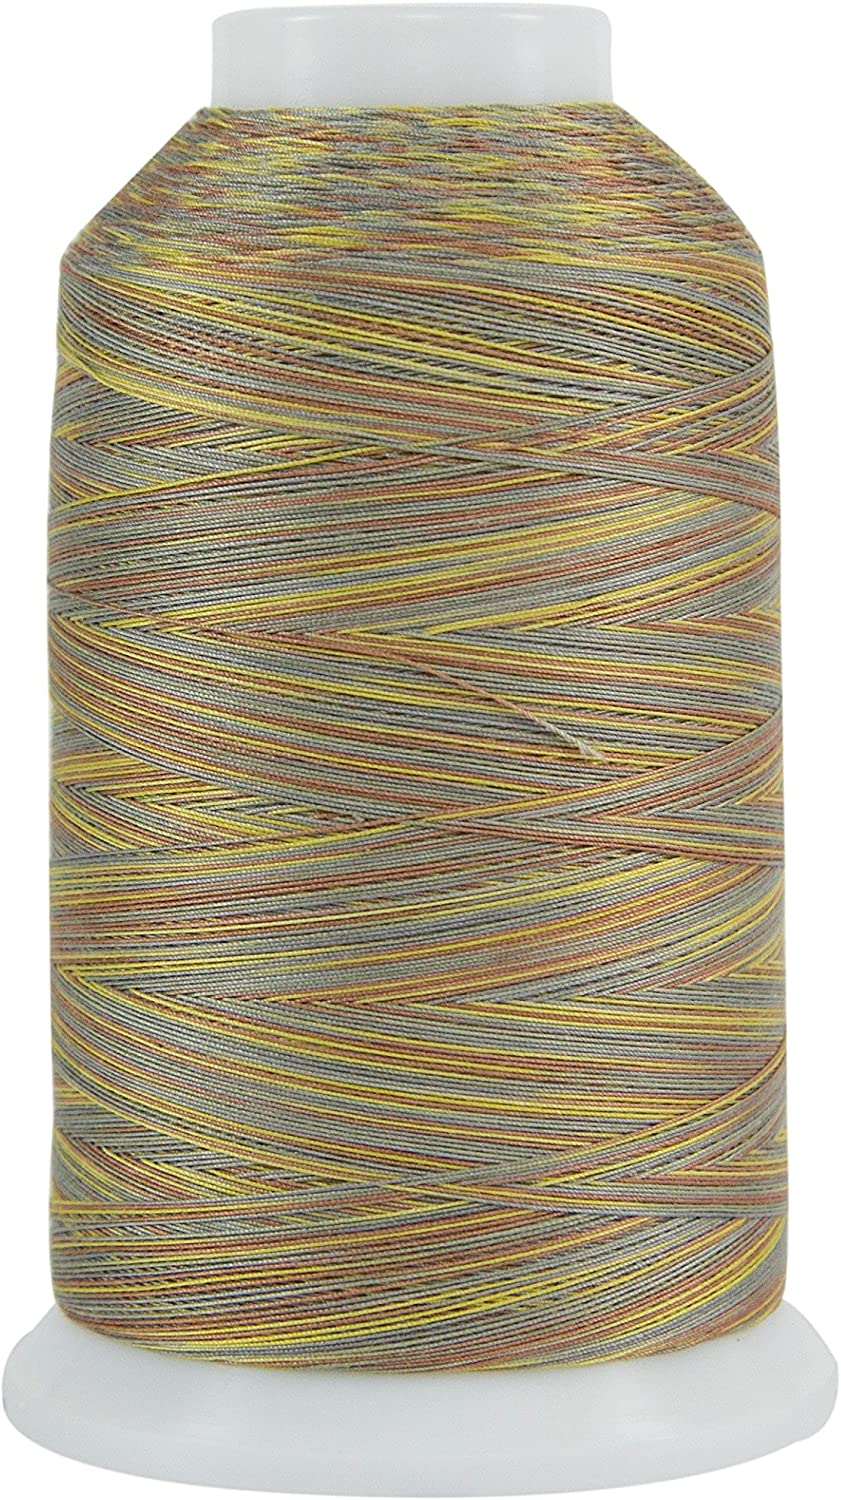 Superior Threads 121029XX954 Shifting Sands 3-Ply 40W King Tut Cotton Quilting Thread 2000 yd